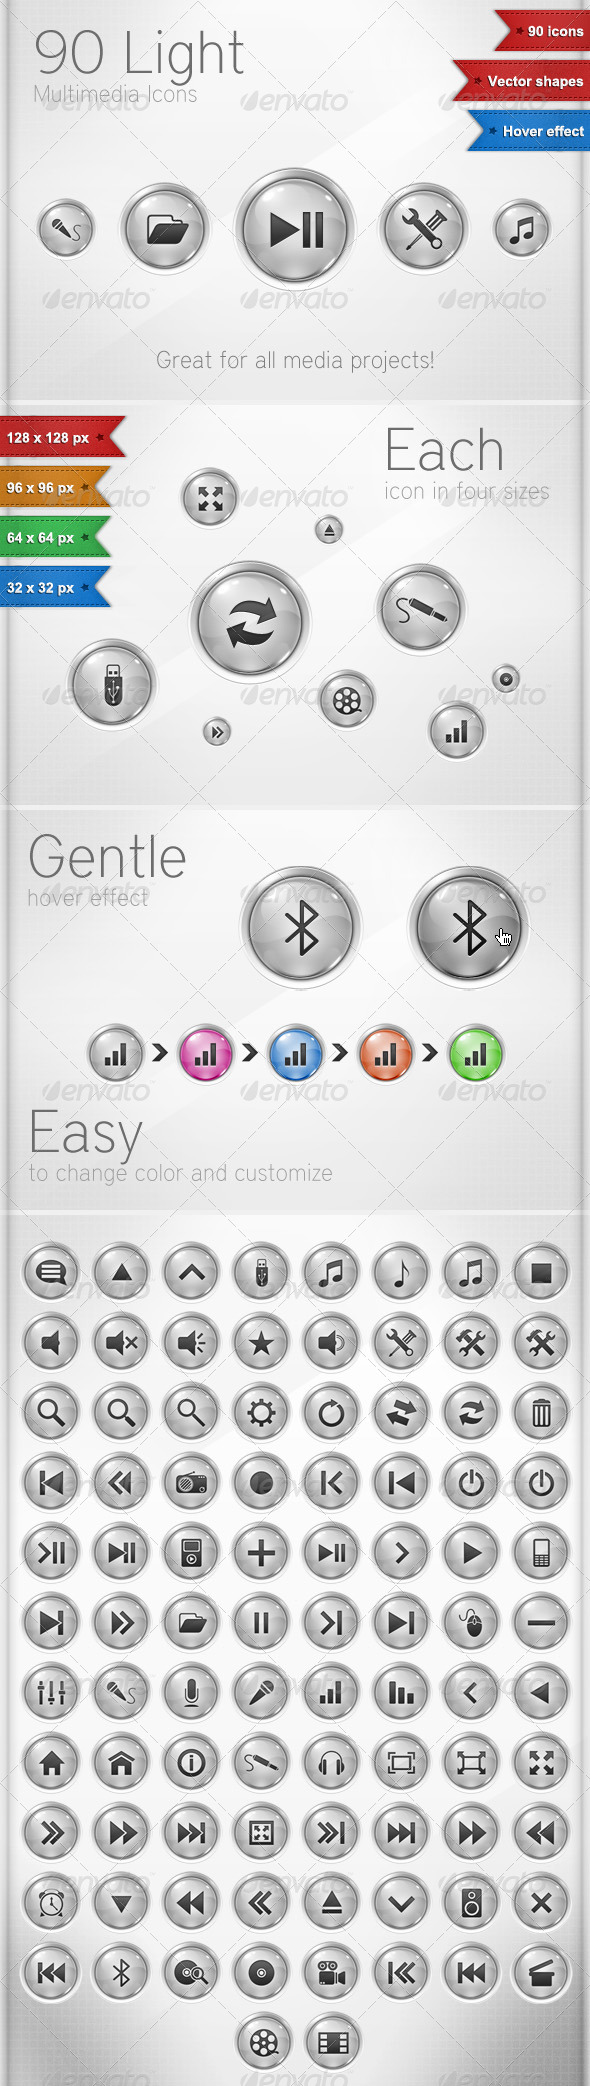 GraphicRiver 90 Light Multimedia Icons 150839